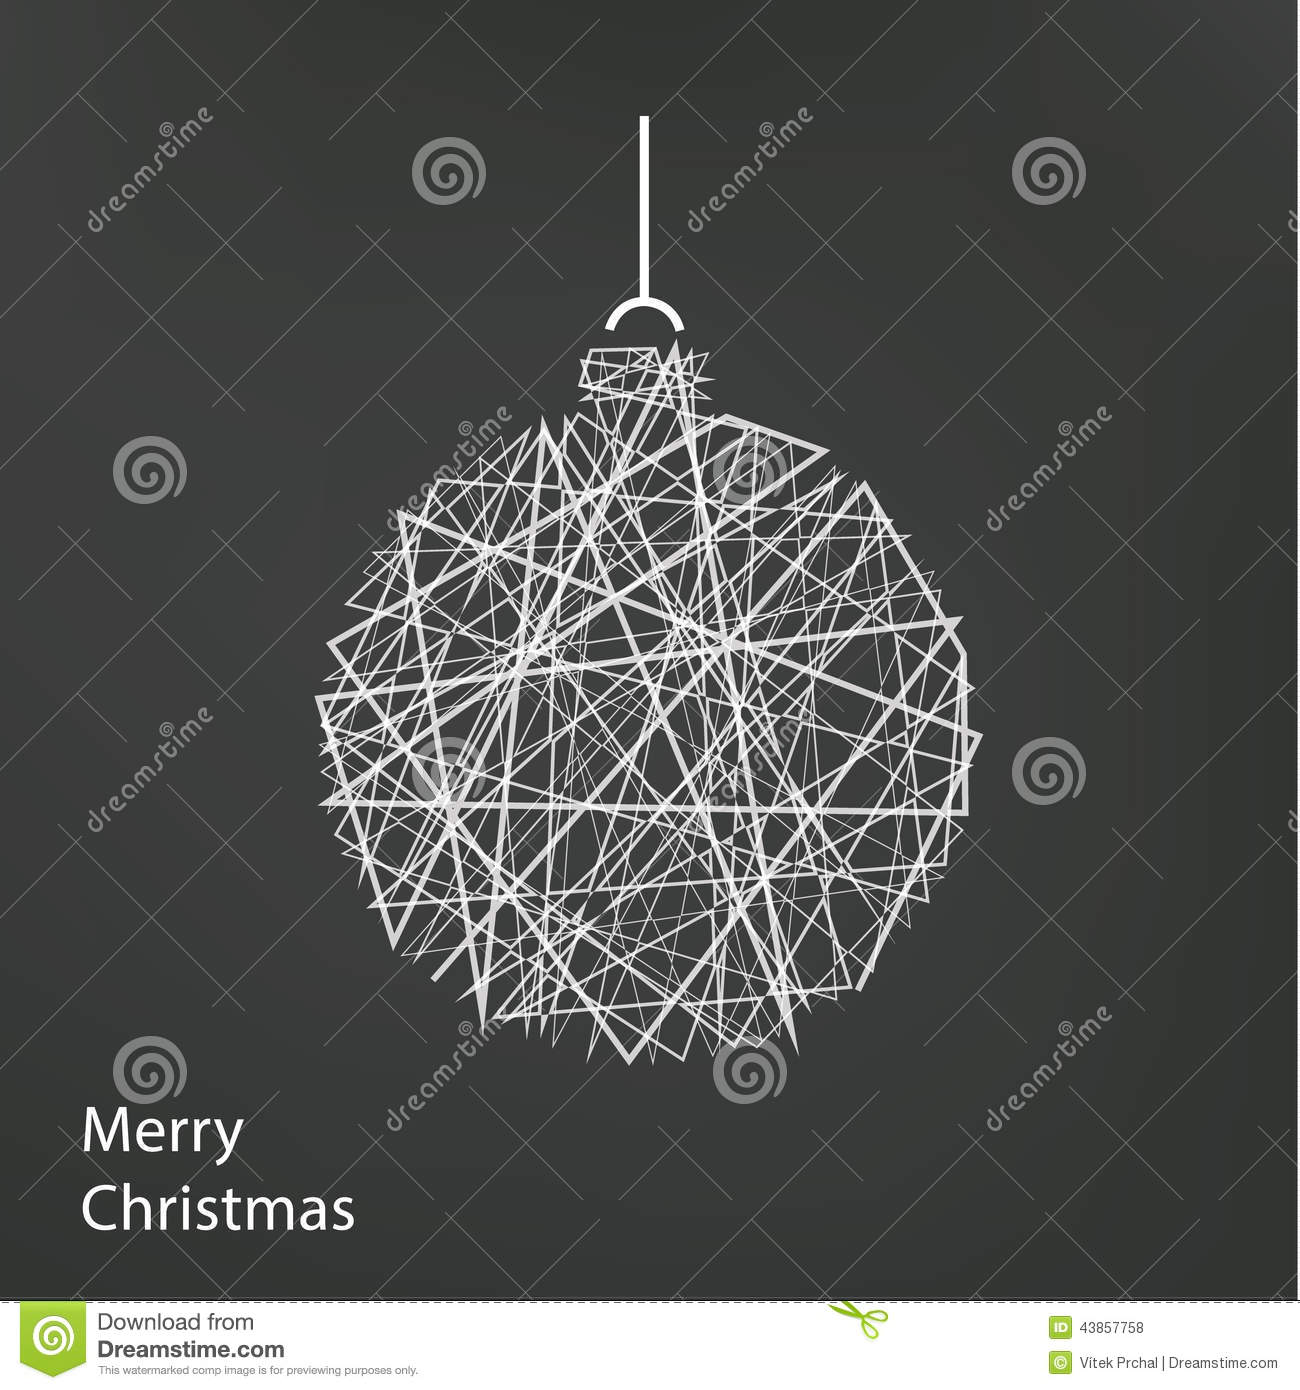 Draw A Christmas Tree